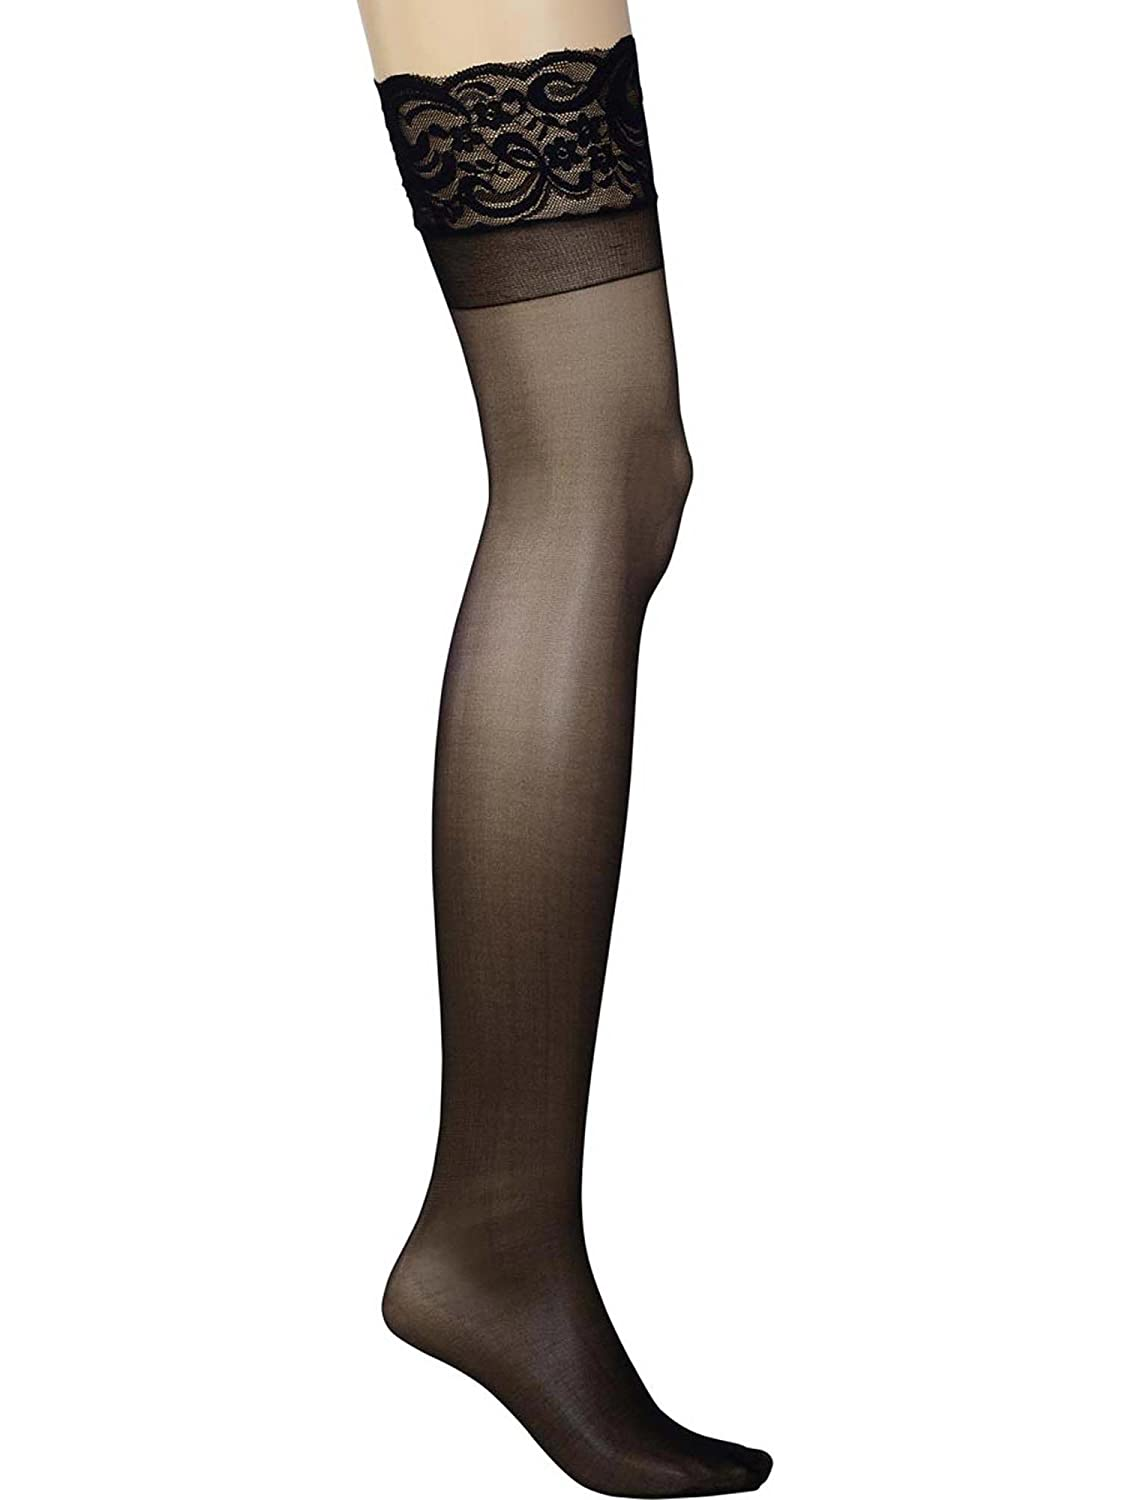 Womens Plus Size Hosiery Sheer Lace Top Black Thigh High Stockings For Garter Belt Angelique